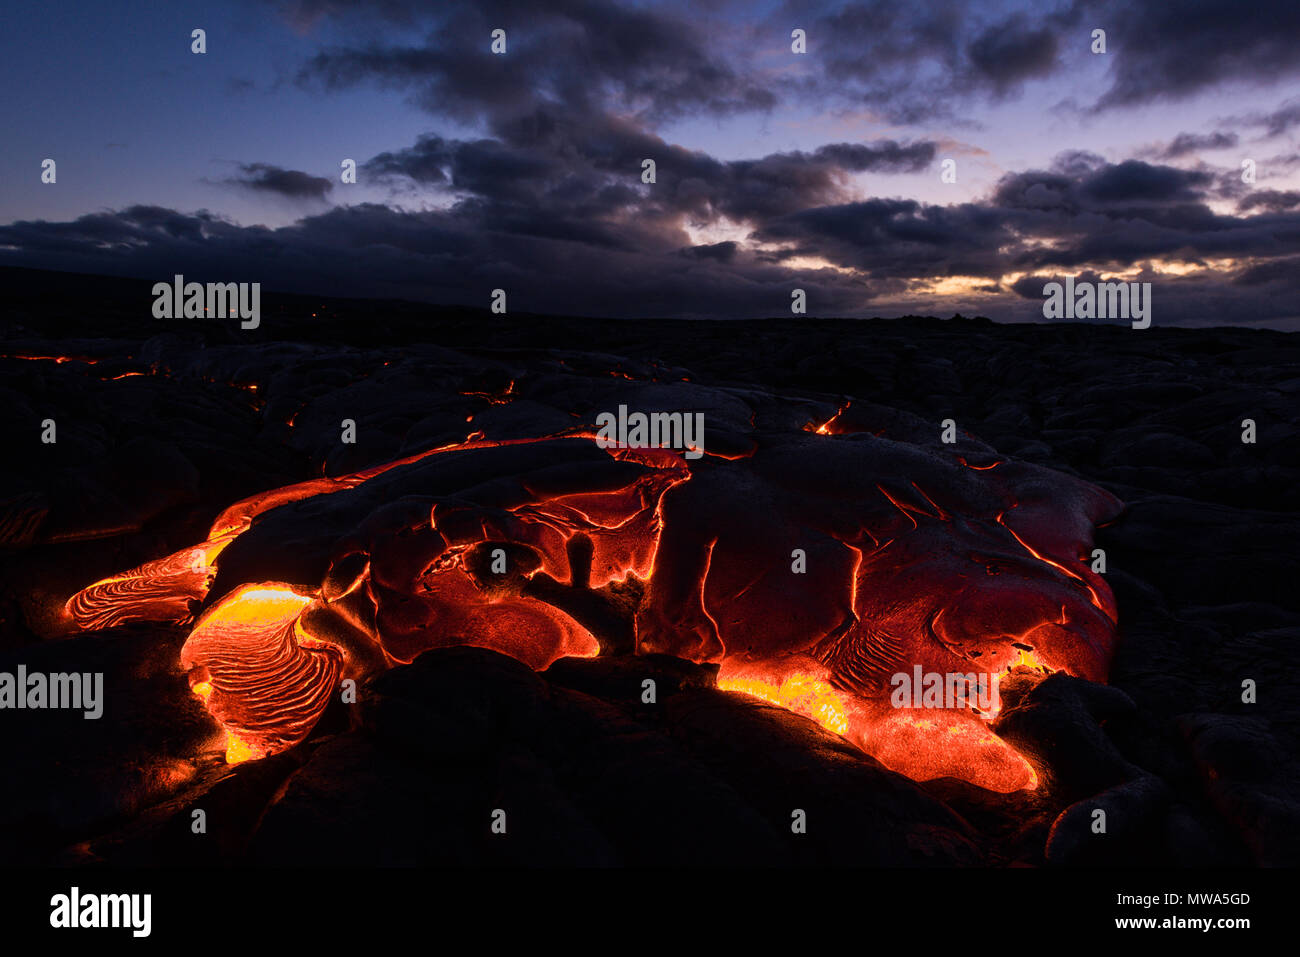 Molten lava from Kilauea volcano eruption flows openly in Volcanoes National Park in Hawaii in 2016. - Stock Image